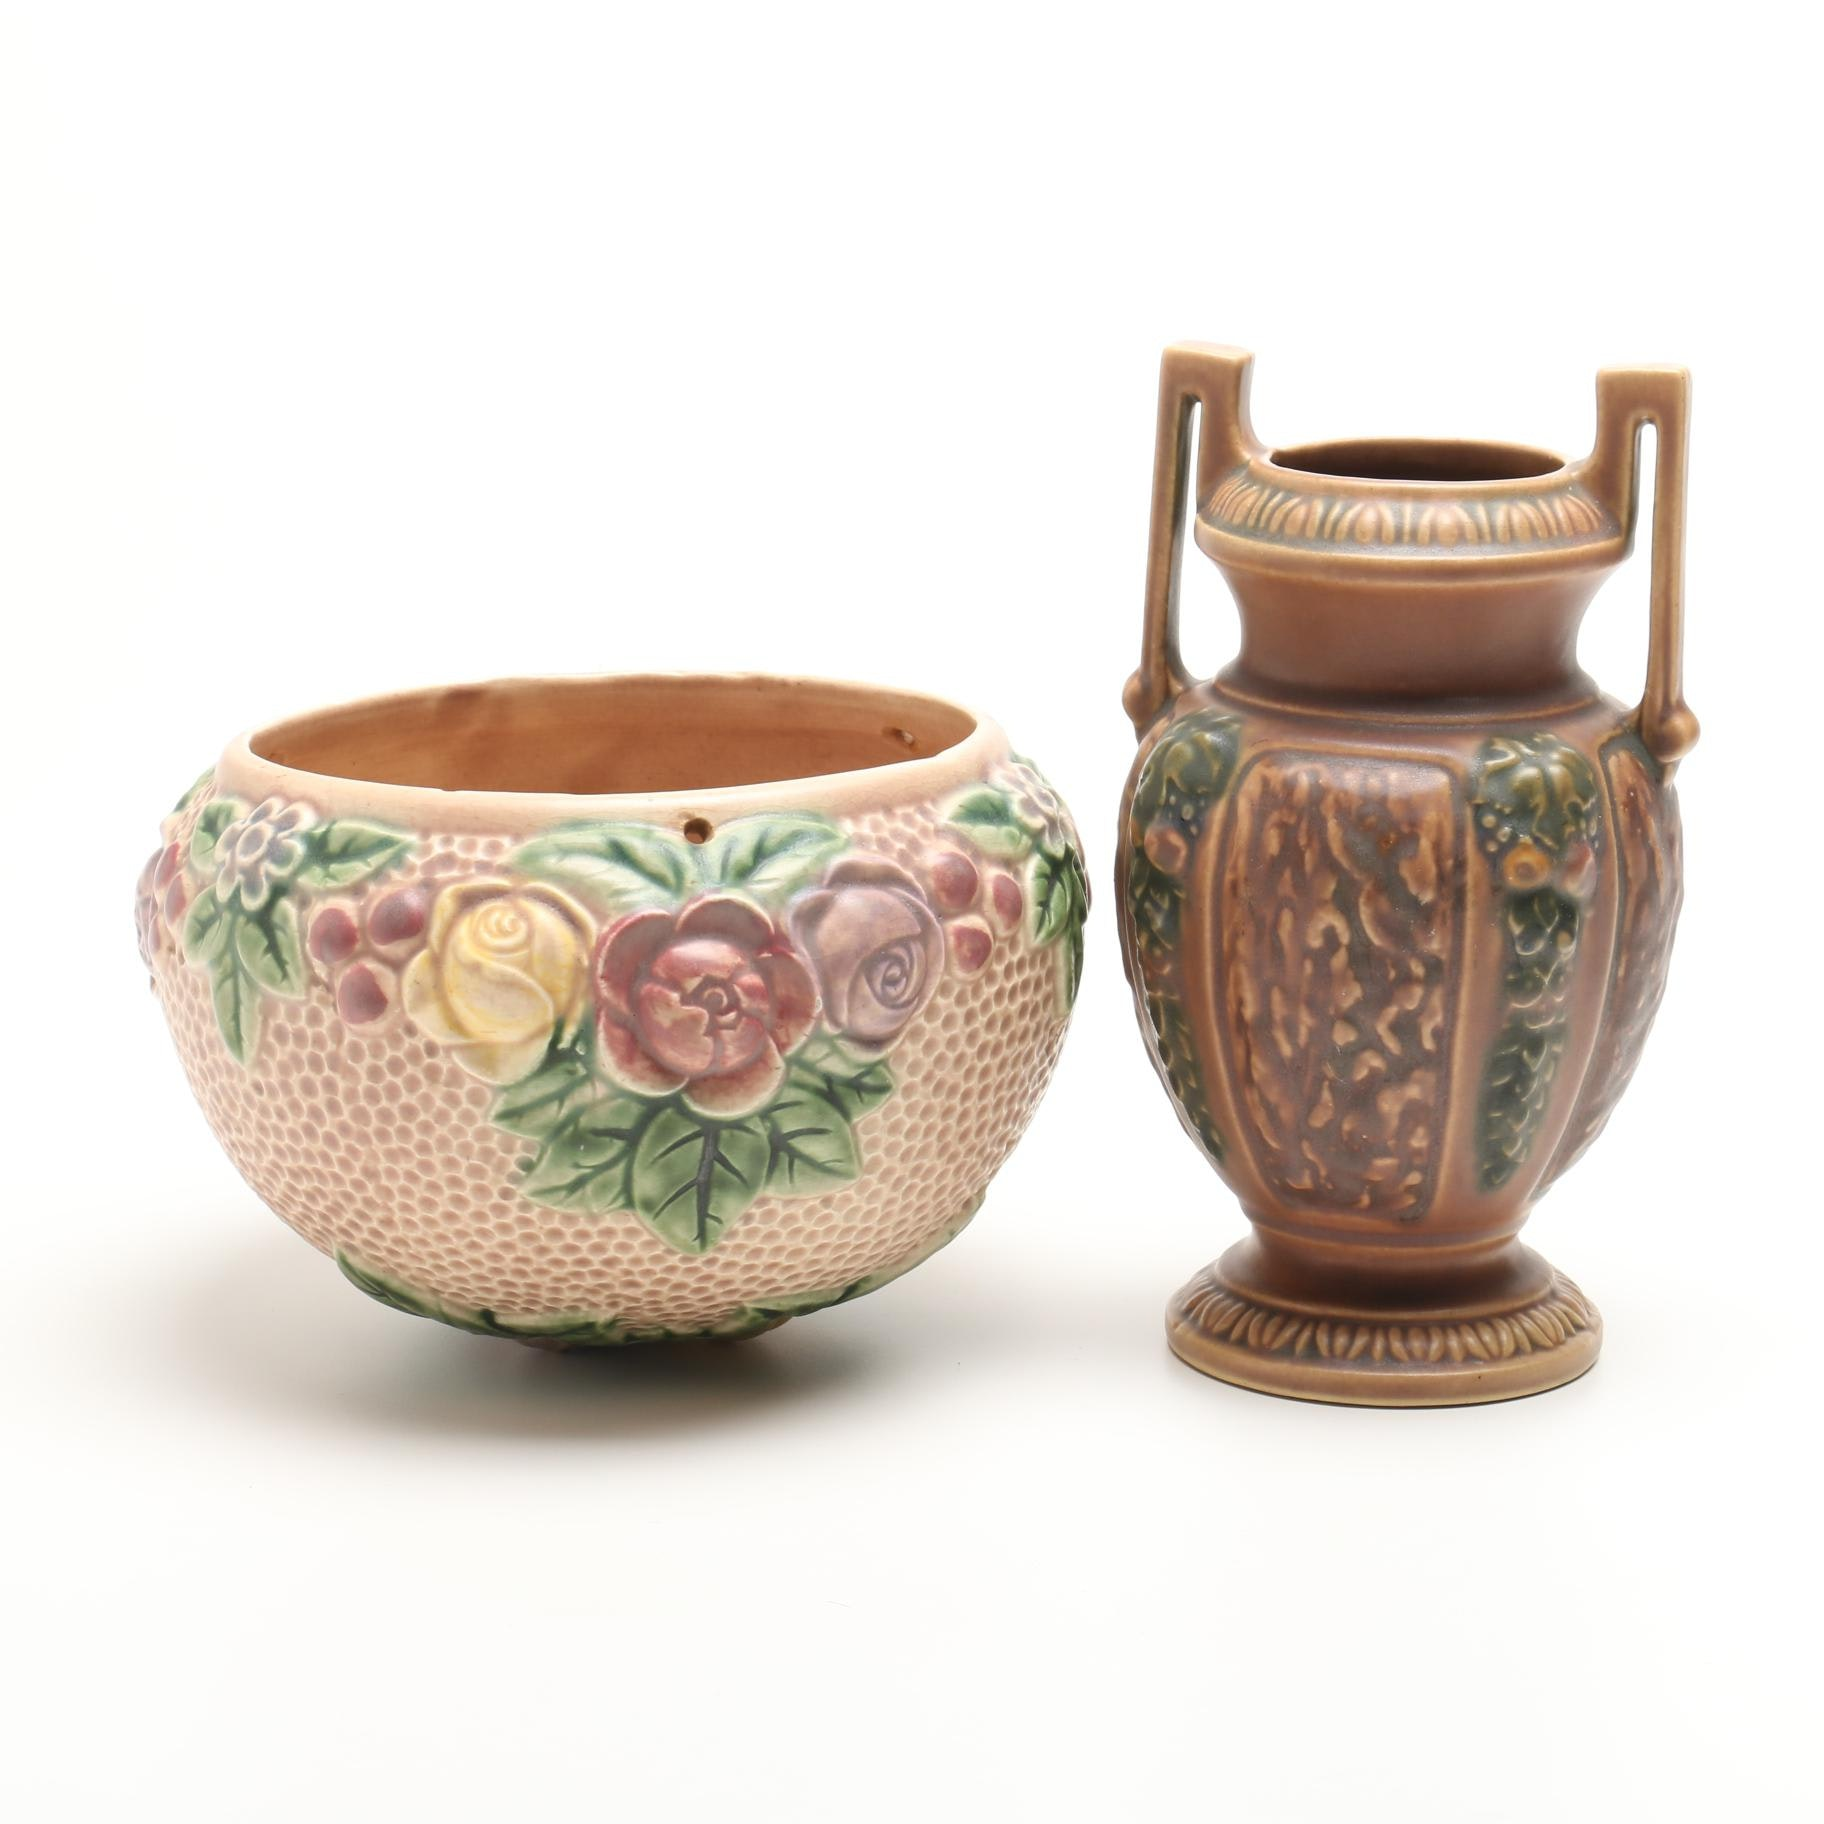 Roseville Pottery Rozane 1917 Hanging Jardiniere And Florentine